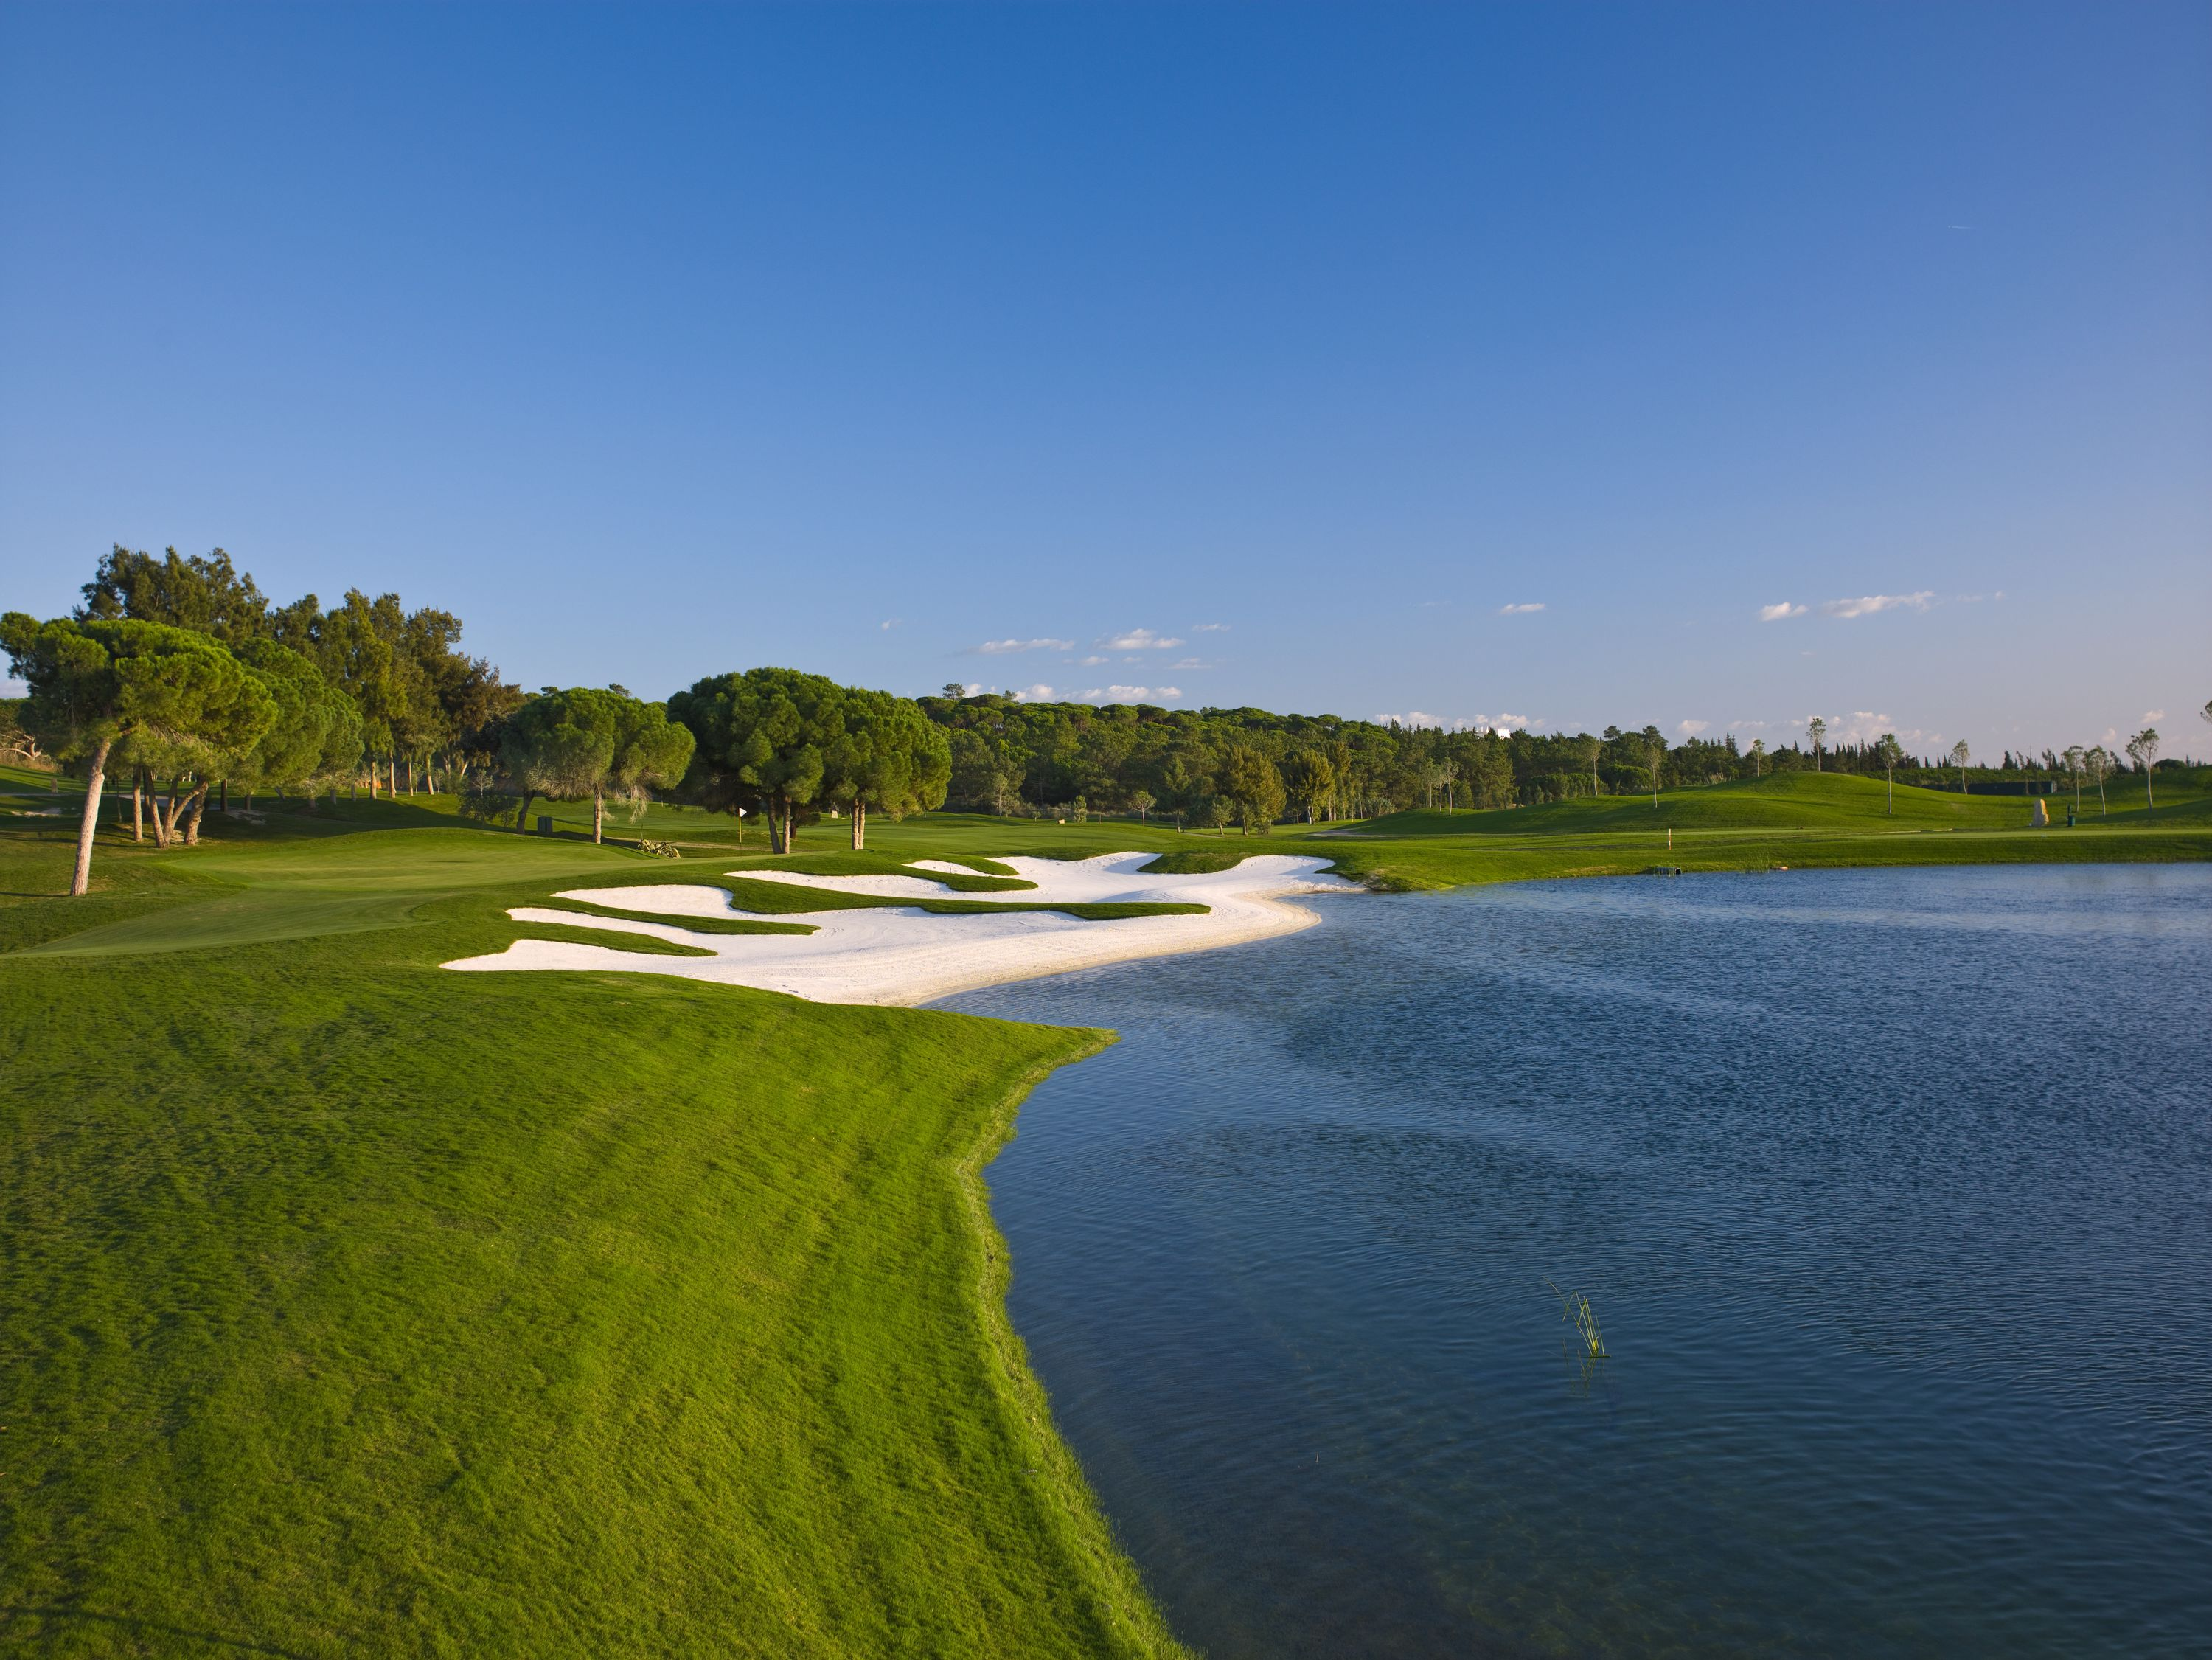 Quinta do lago laranjal cover picture